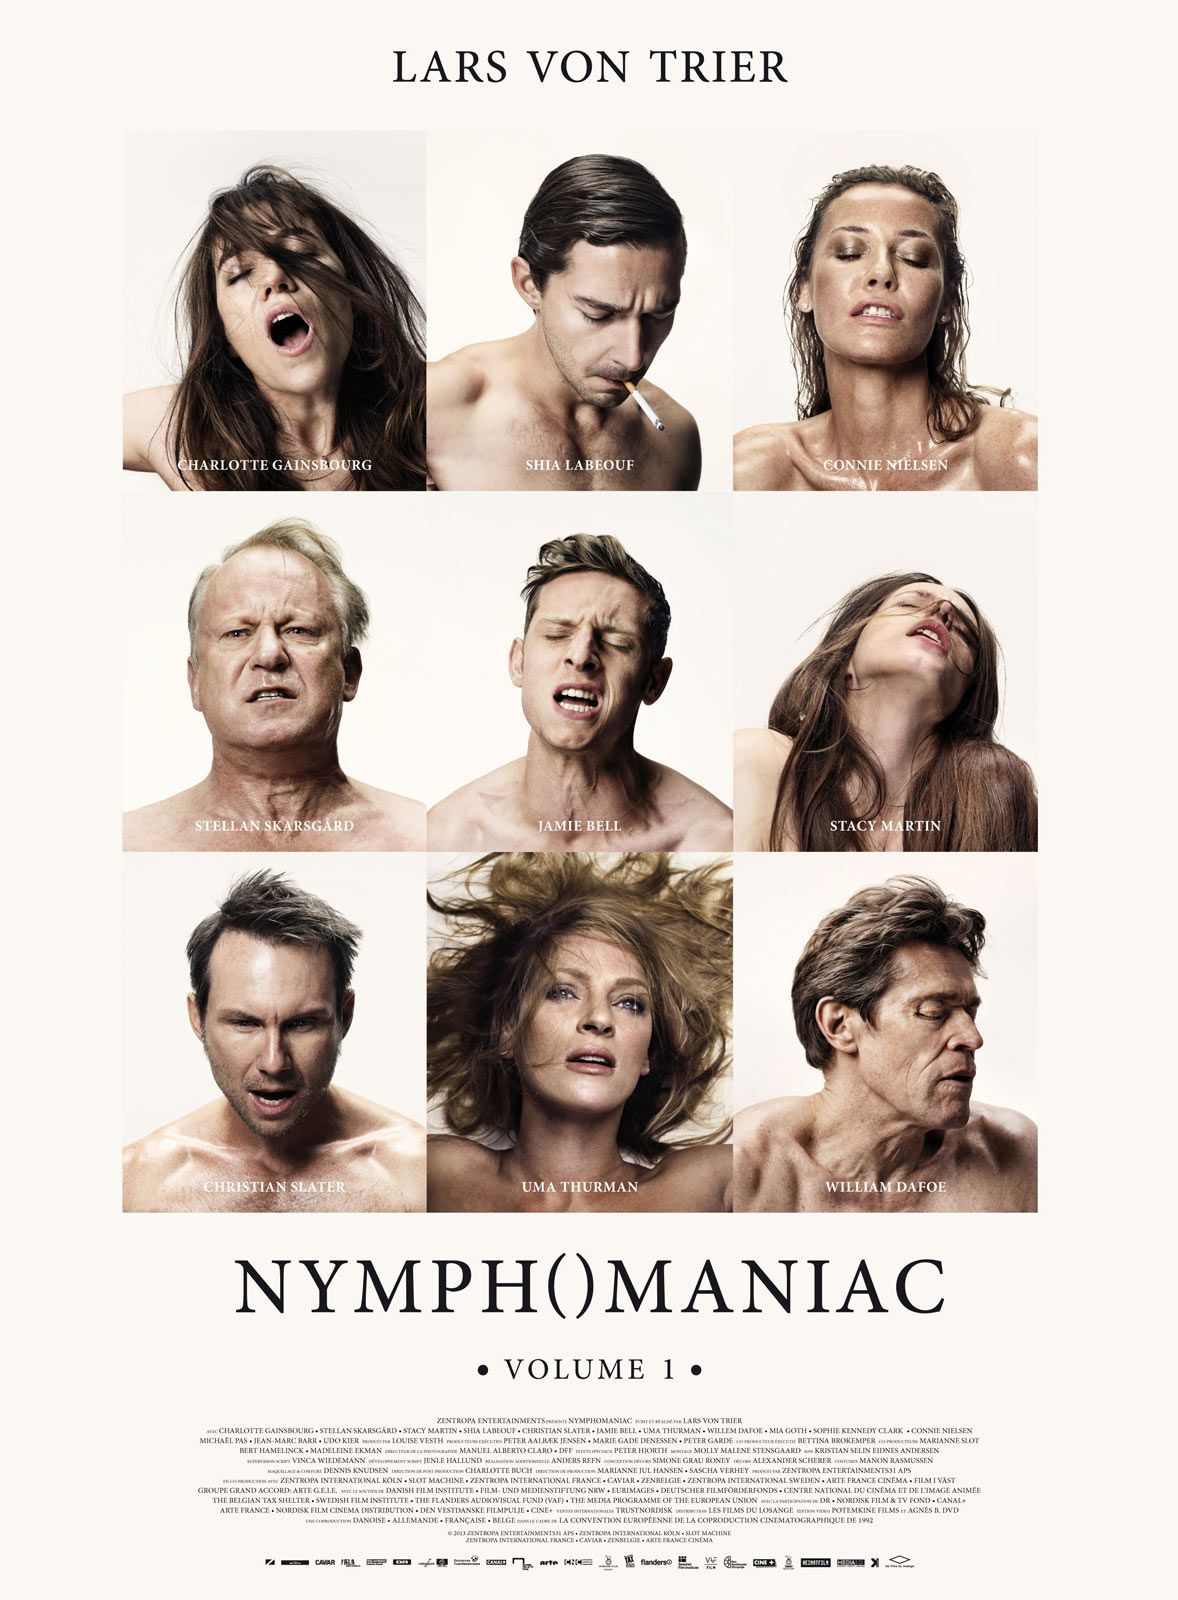 Nymphomaniac : Volume 1 - Film (2013) streaming VF gratuit complet